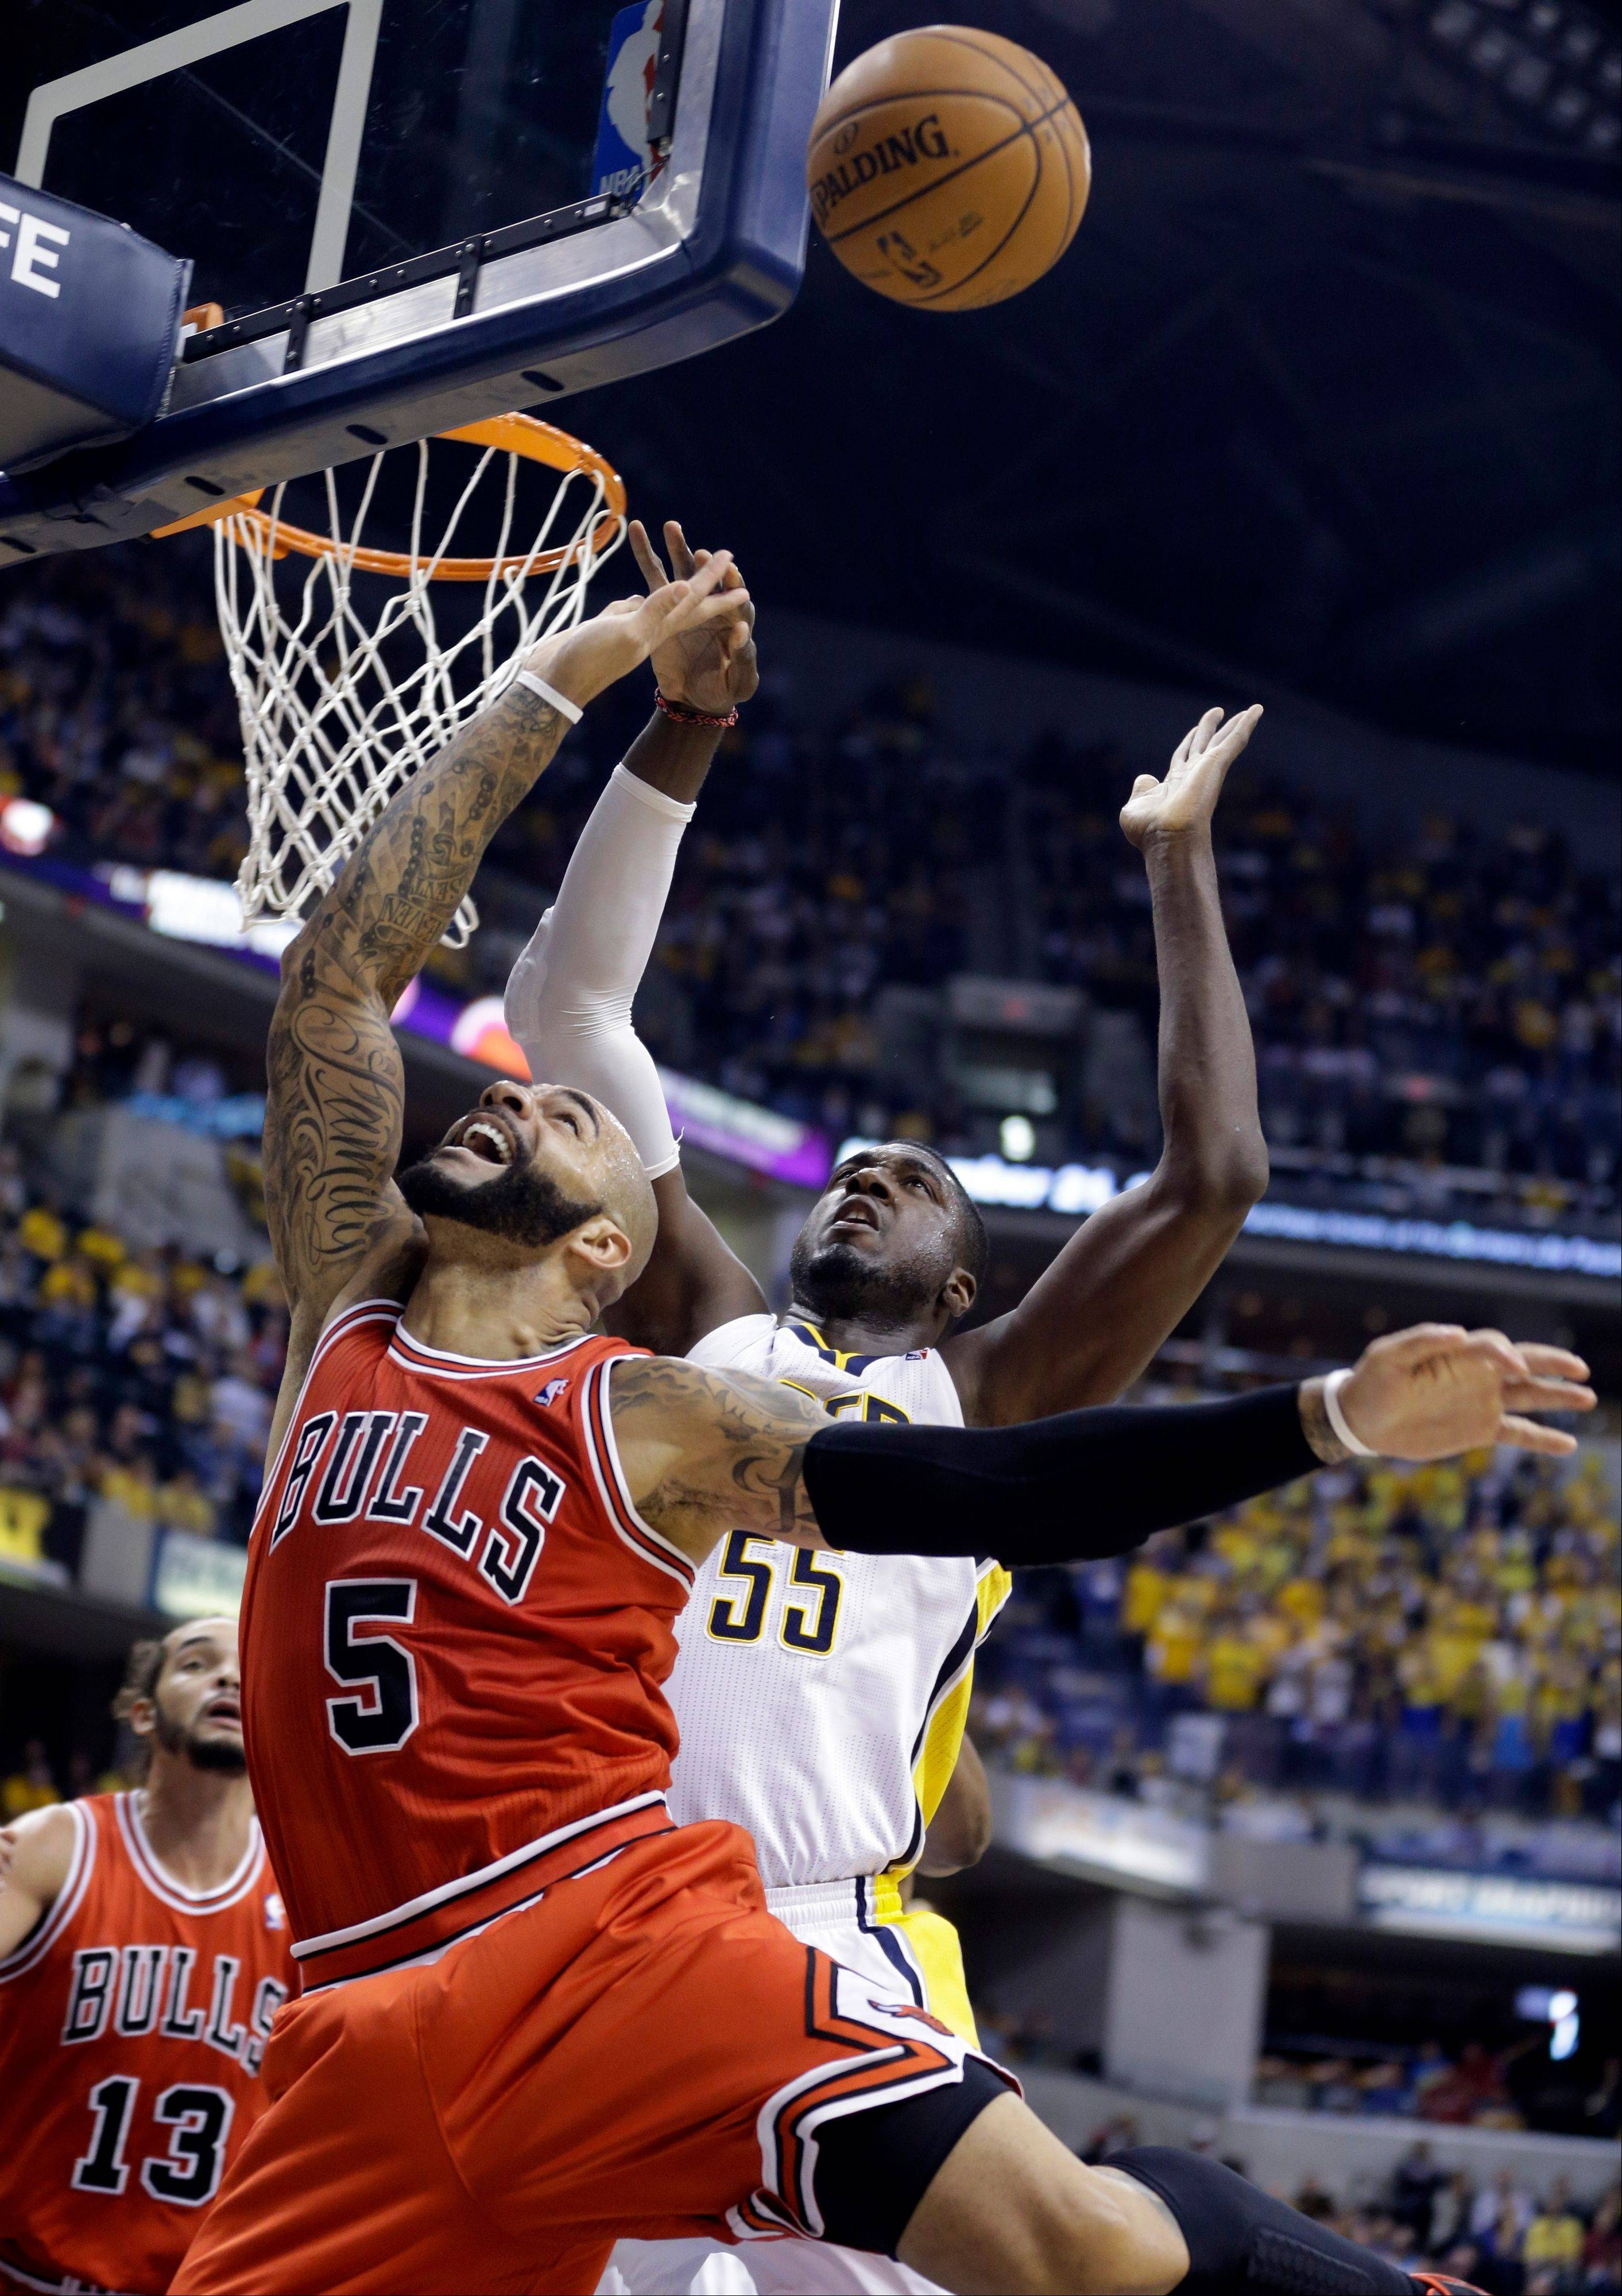 Indiana Pacers center Roy Hibbert comes from behind to block the shot of Chicago Bulls forward Carlos Boozer in the first half of an NBA basketball game in Indianapolis, Wednesday, Nov. 6, 2013.